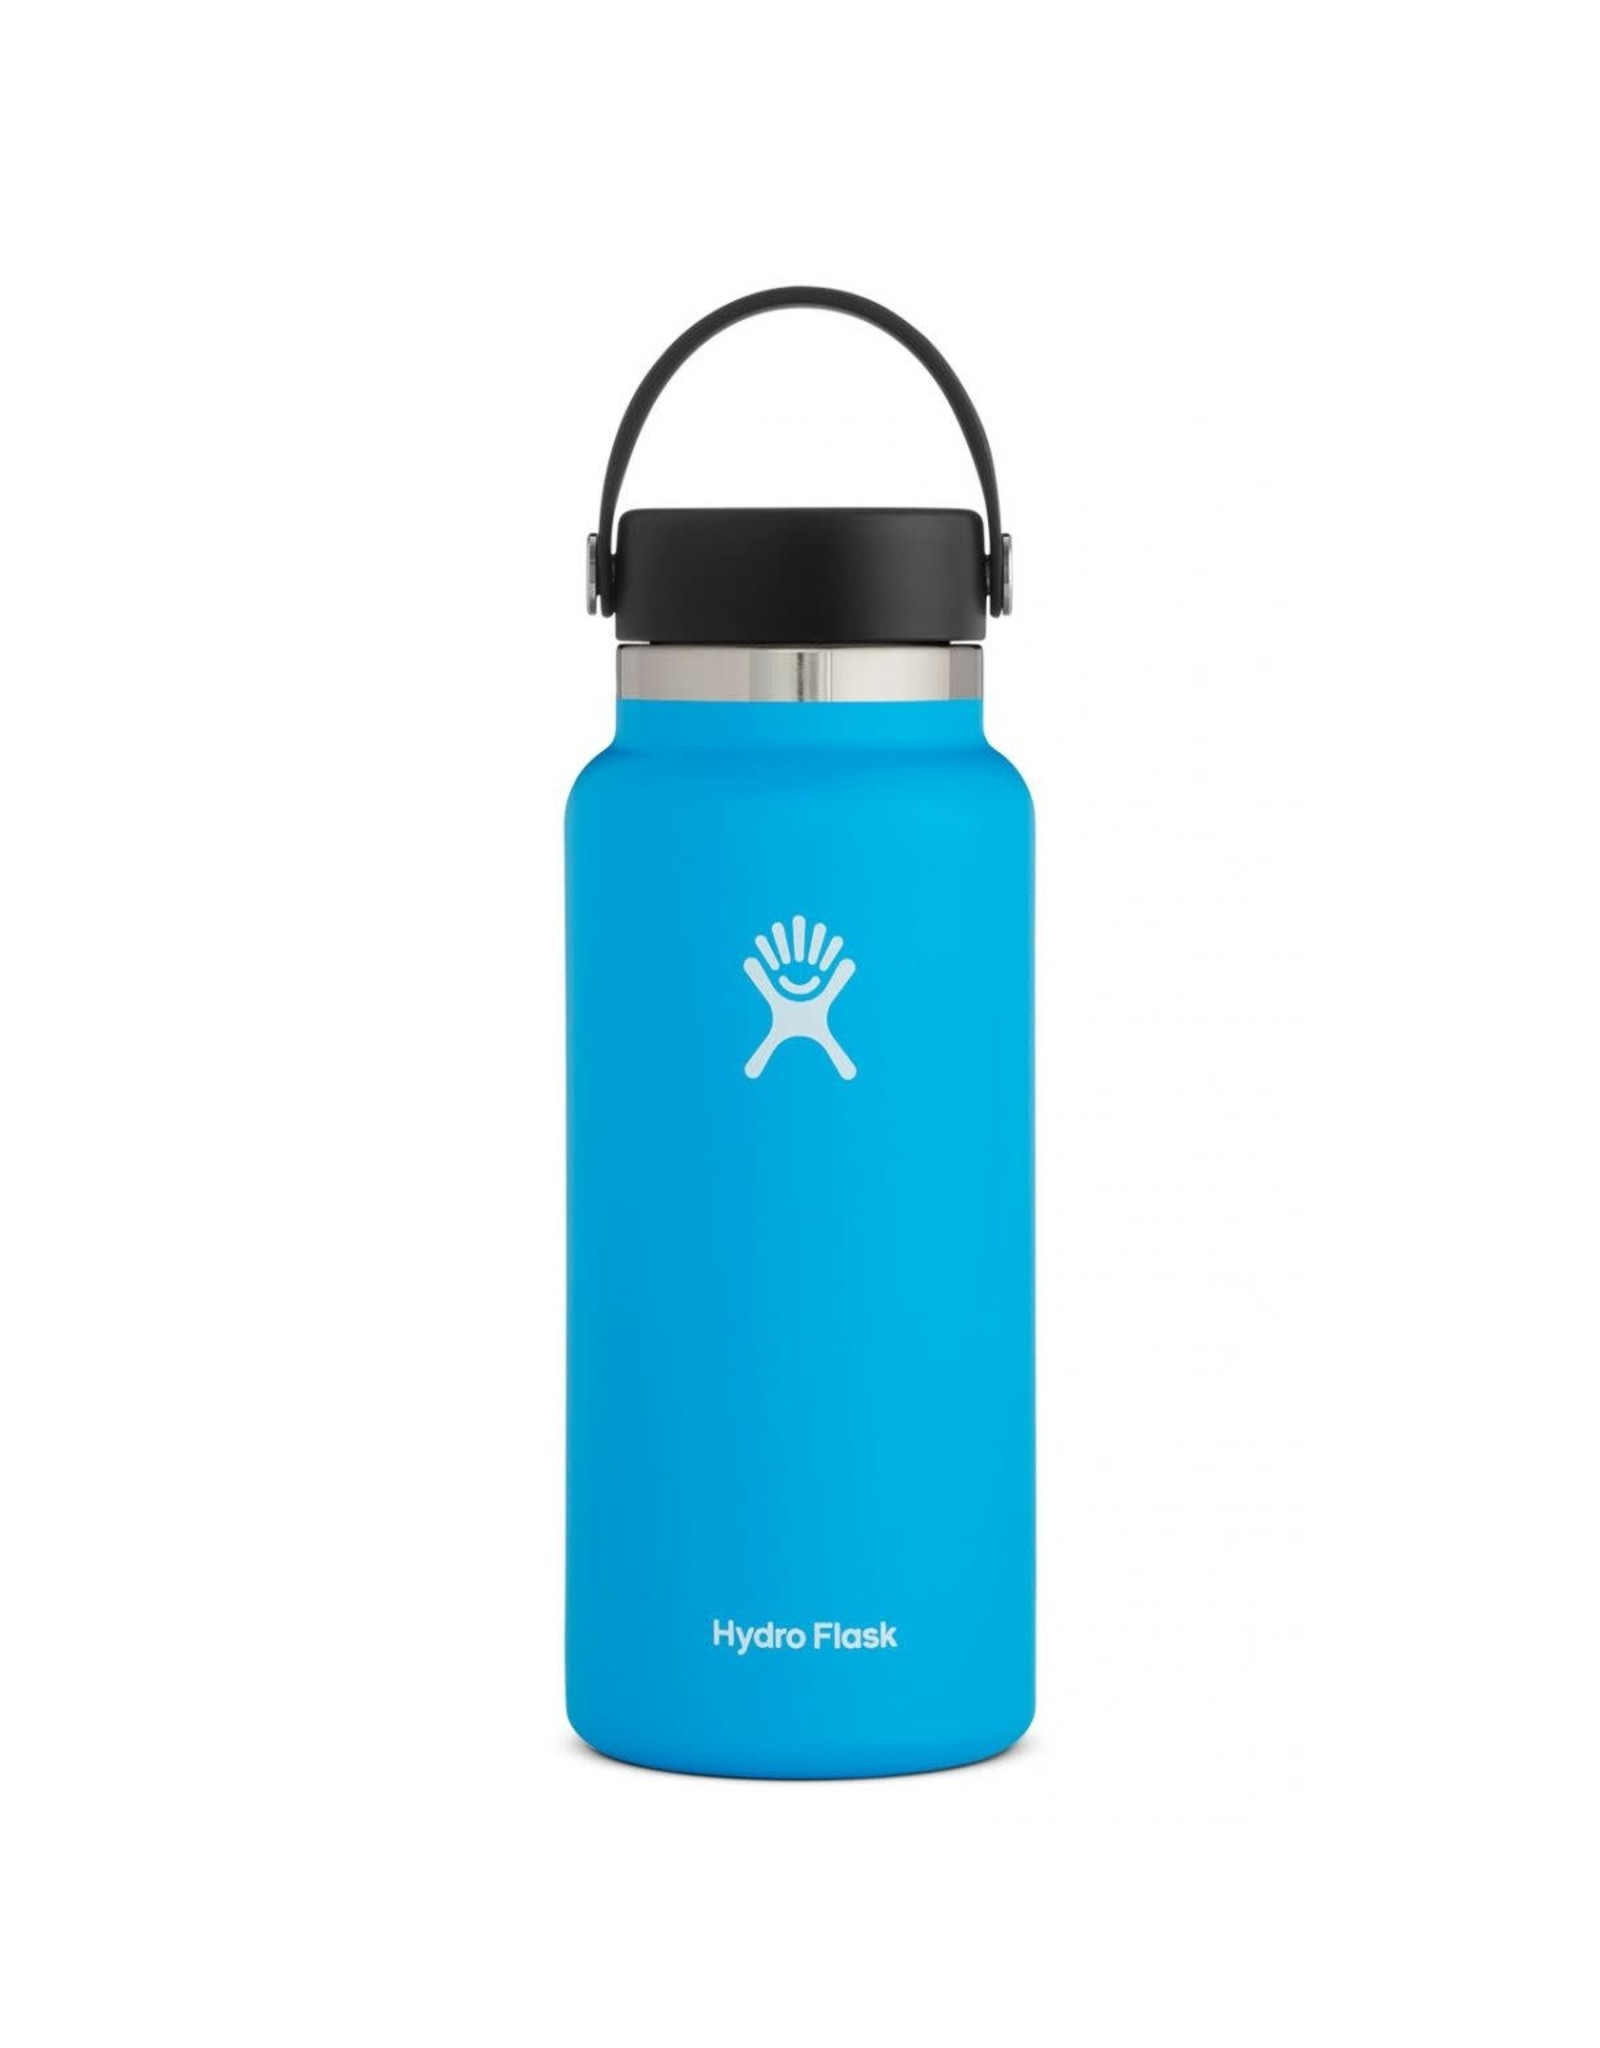 Hydro Flask Hydro Flask 32oz Wide Mouth Flex Pacific